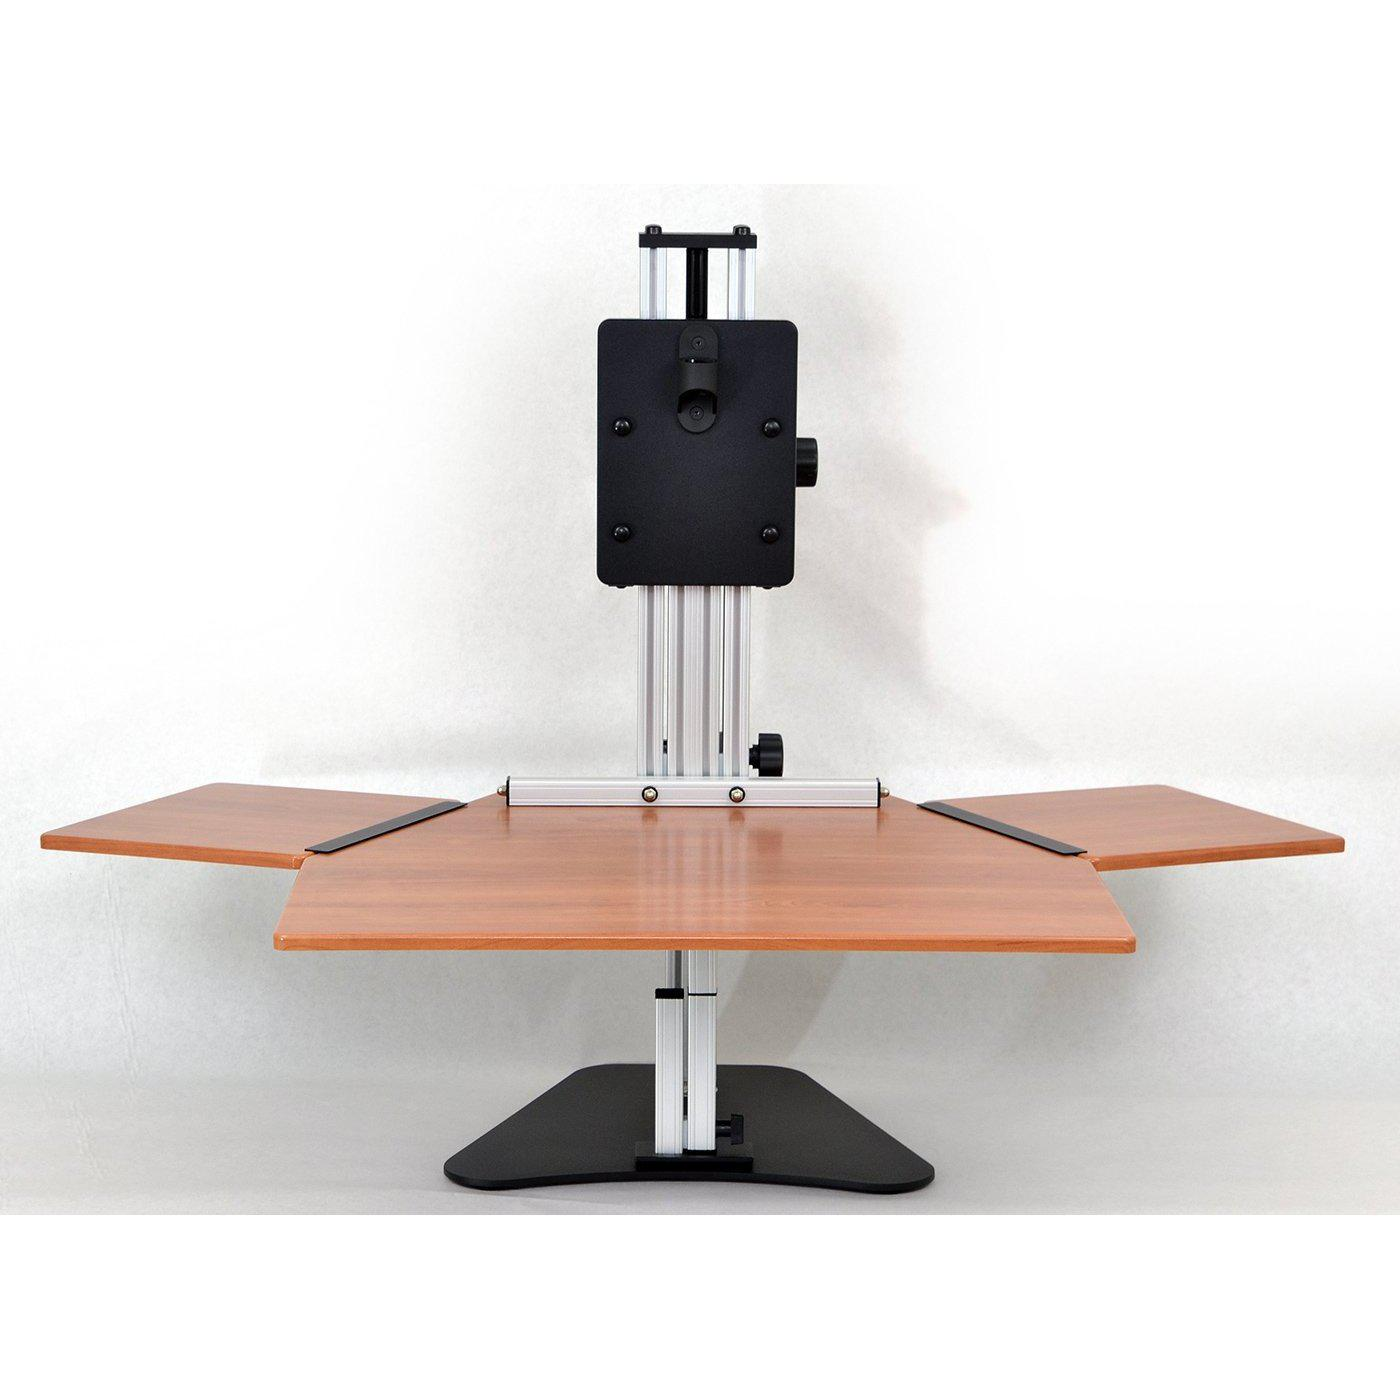 Ergo Desktop Detachable Side Work Surfaces